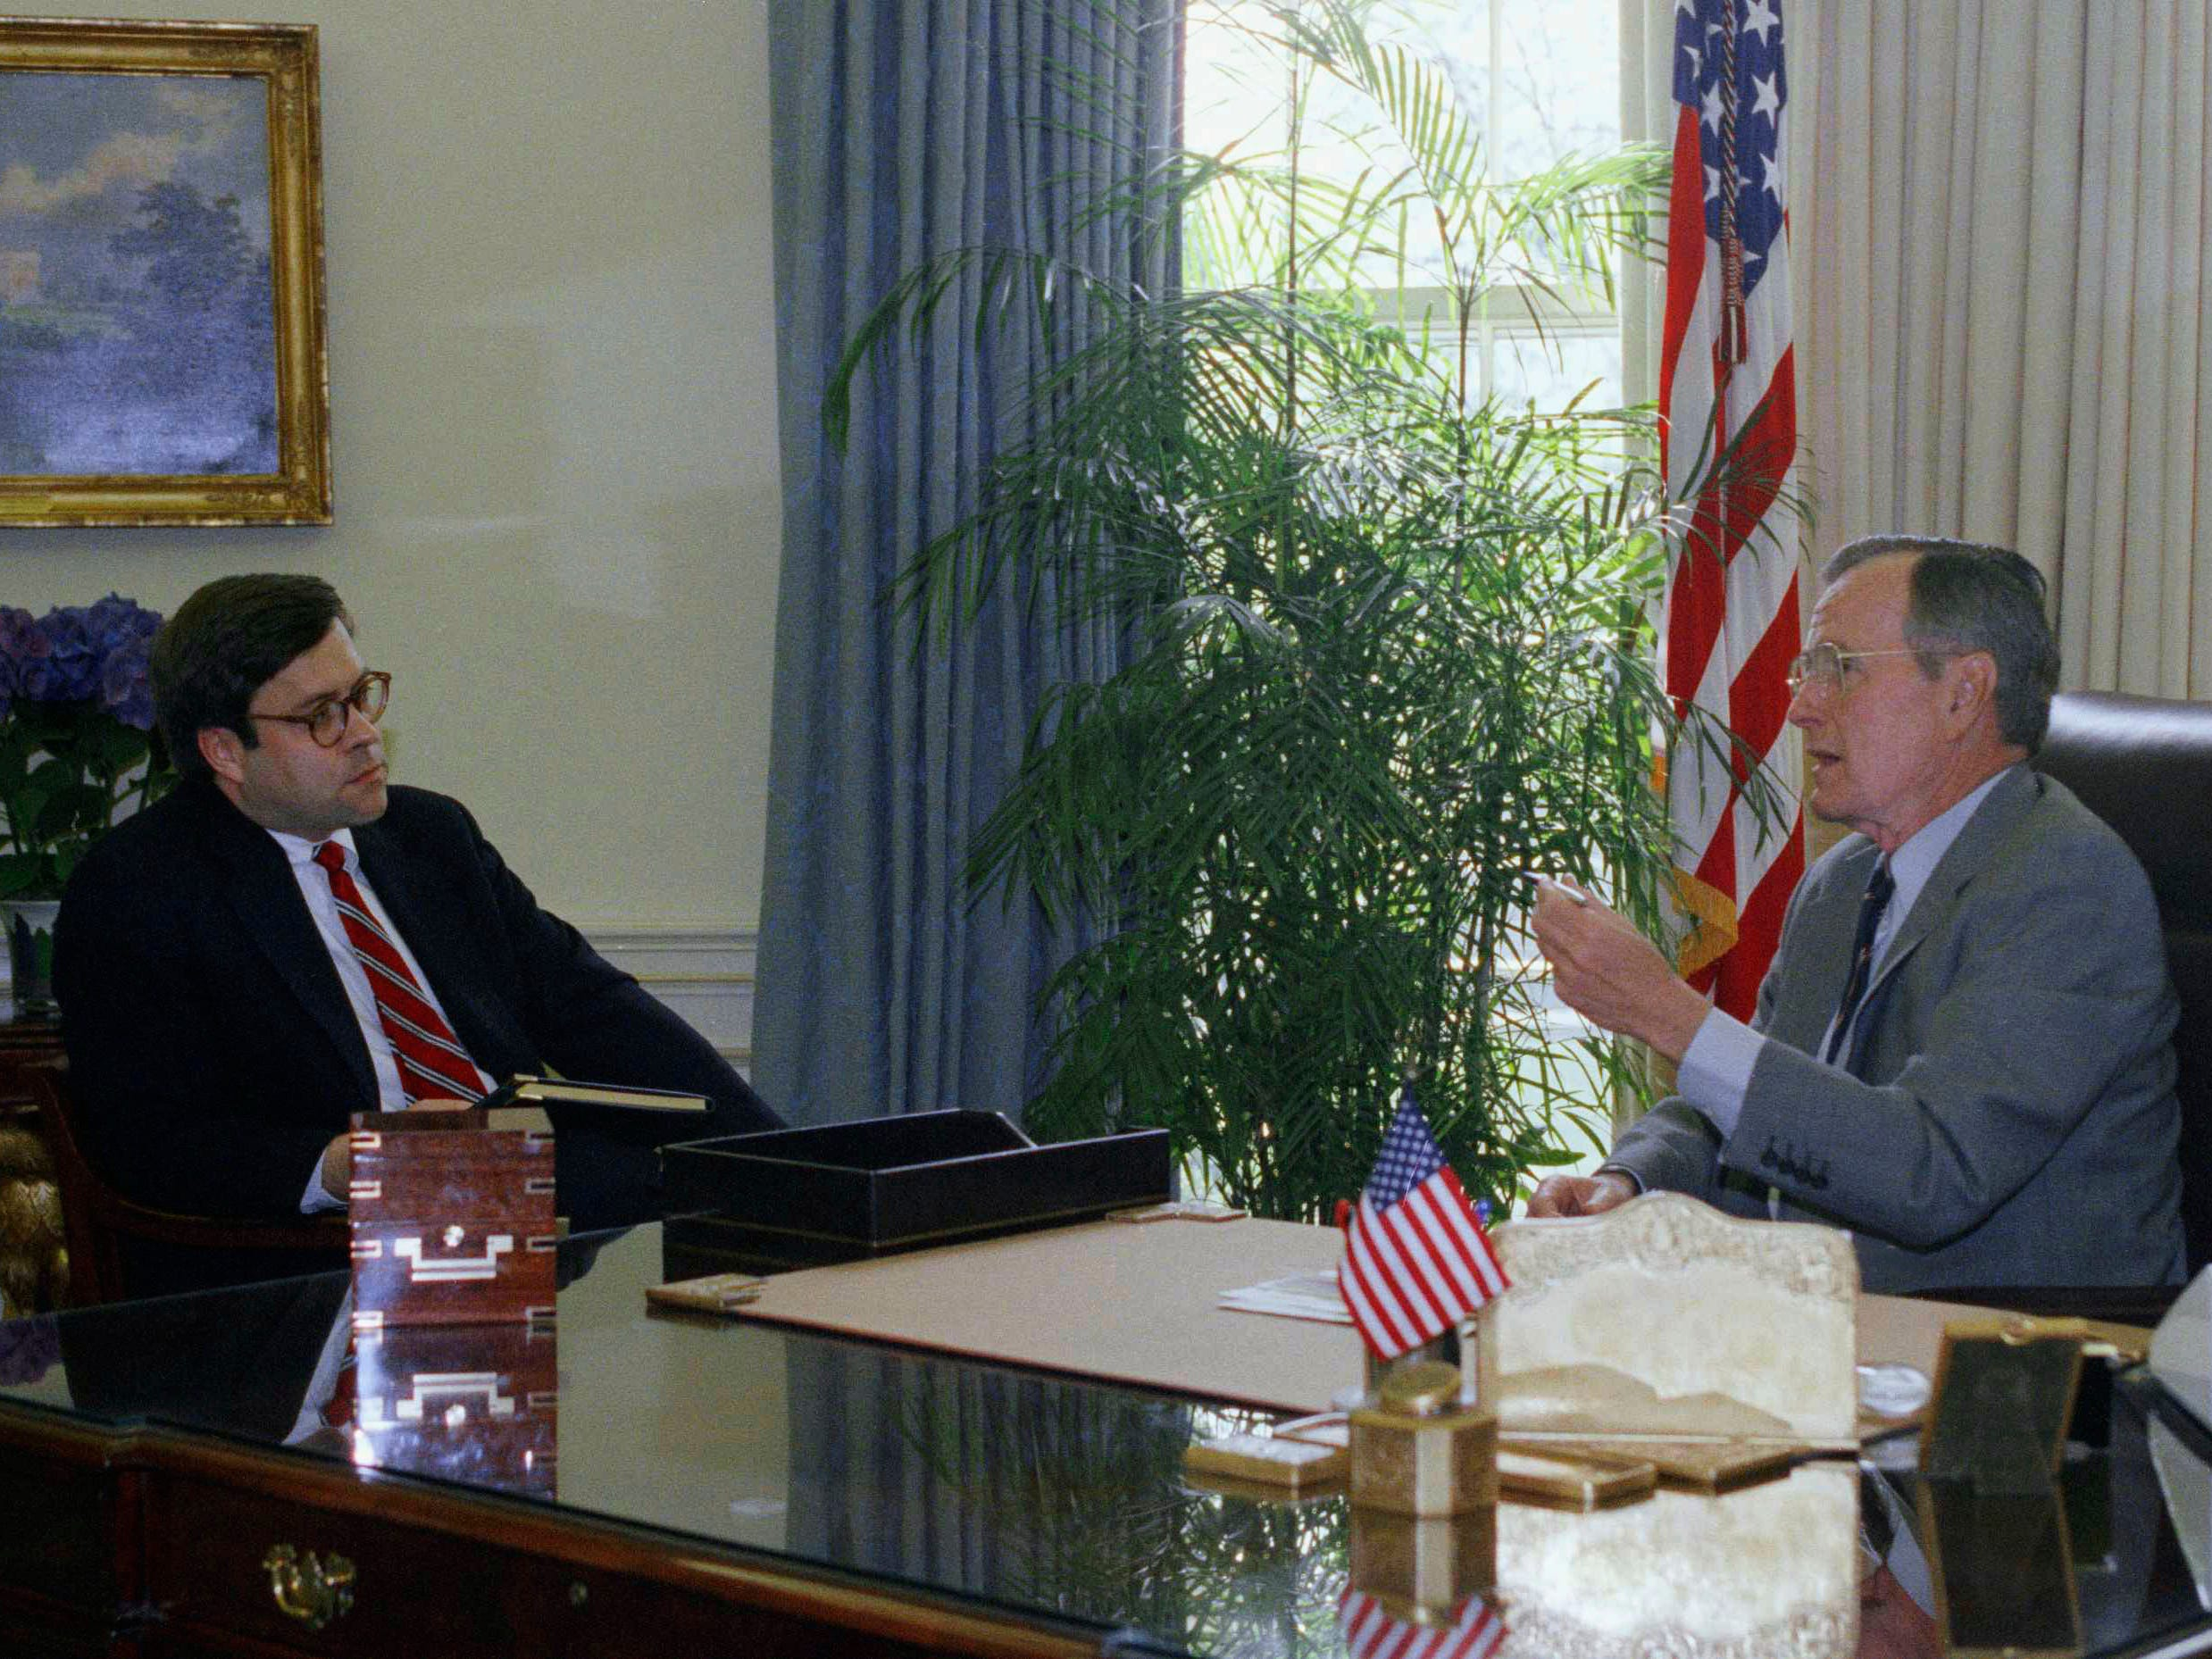 "U.S. President George H. Bush meets with Attorney General William Barr in the Oval Office at morning, Thursday, May 1, 1992 in White House at Washington. In a dramatic change of tone in just a few hours, Bush went from expressing ""frustration and anguish"" over the verdict in the Rodney King case to declaring ""revulsion and pain"" over the violent uprising that terrorized Los Angeles. (AP Photo/Barry Thumma)"